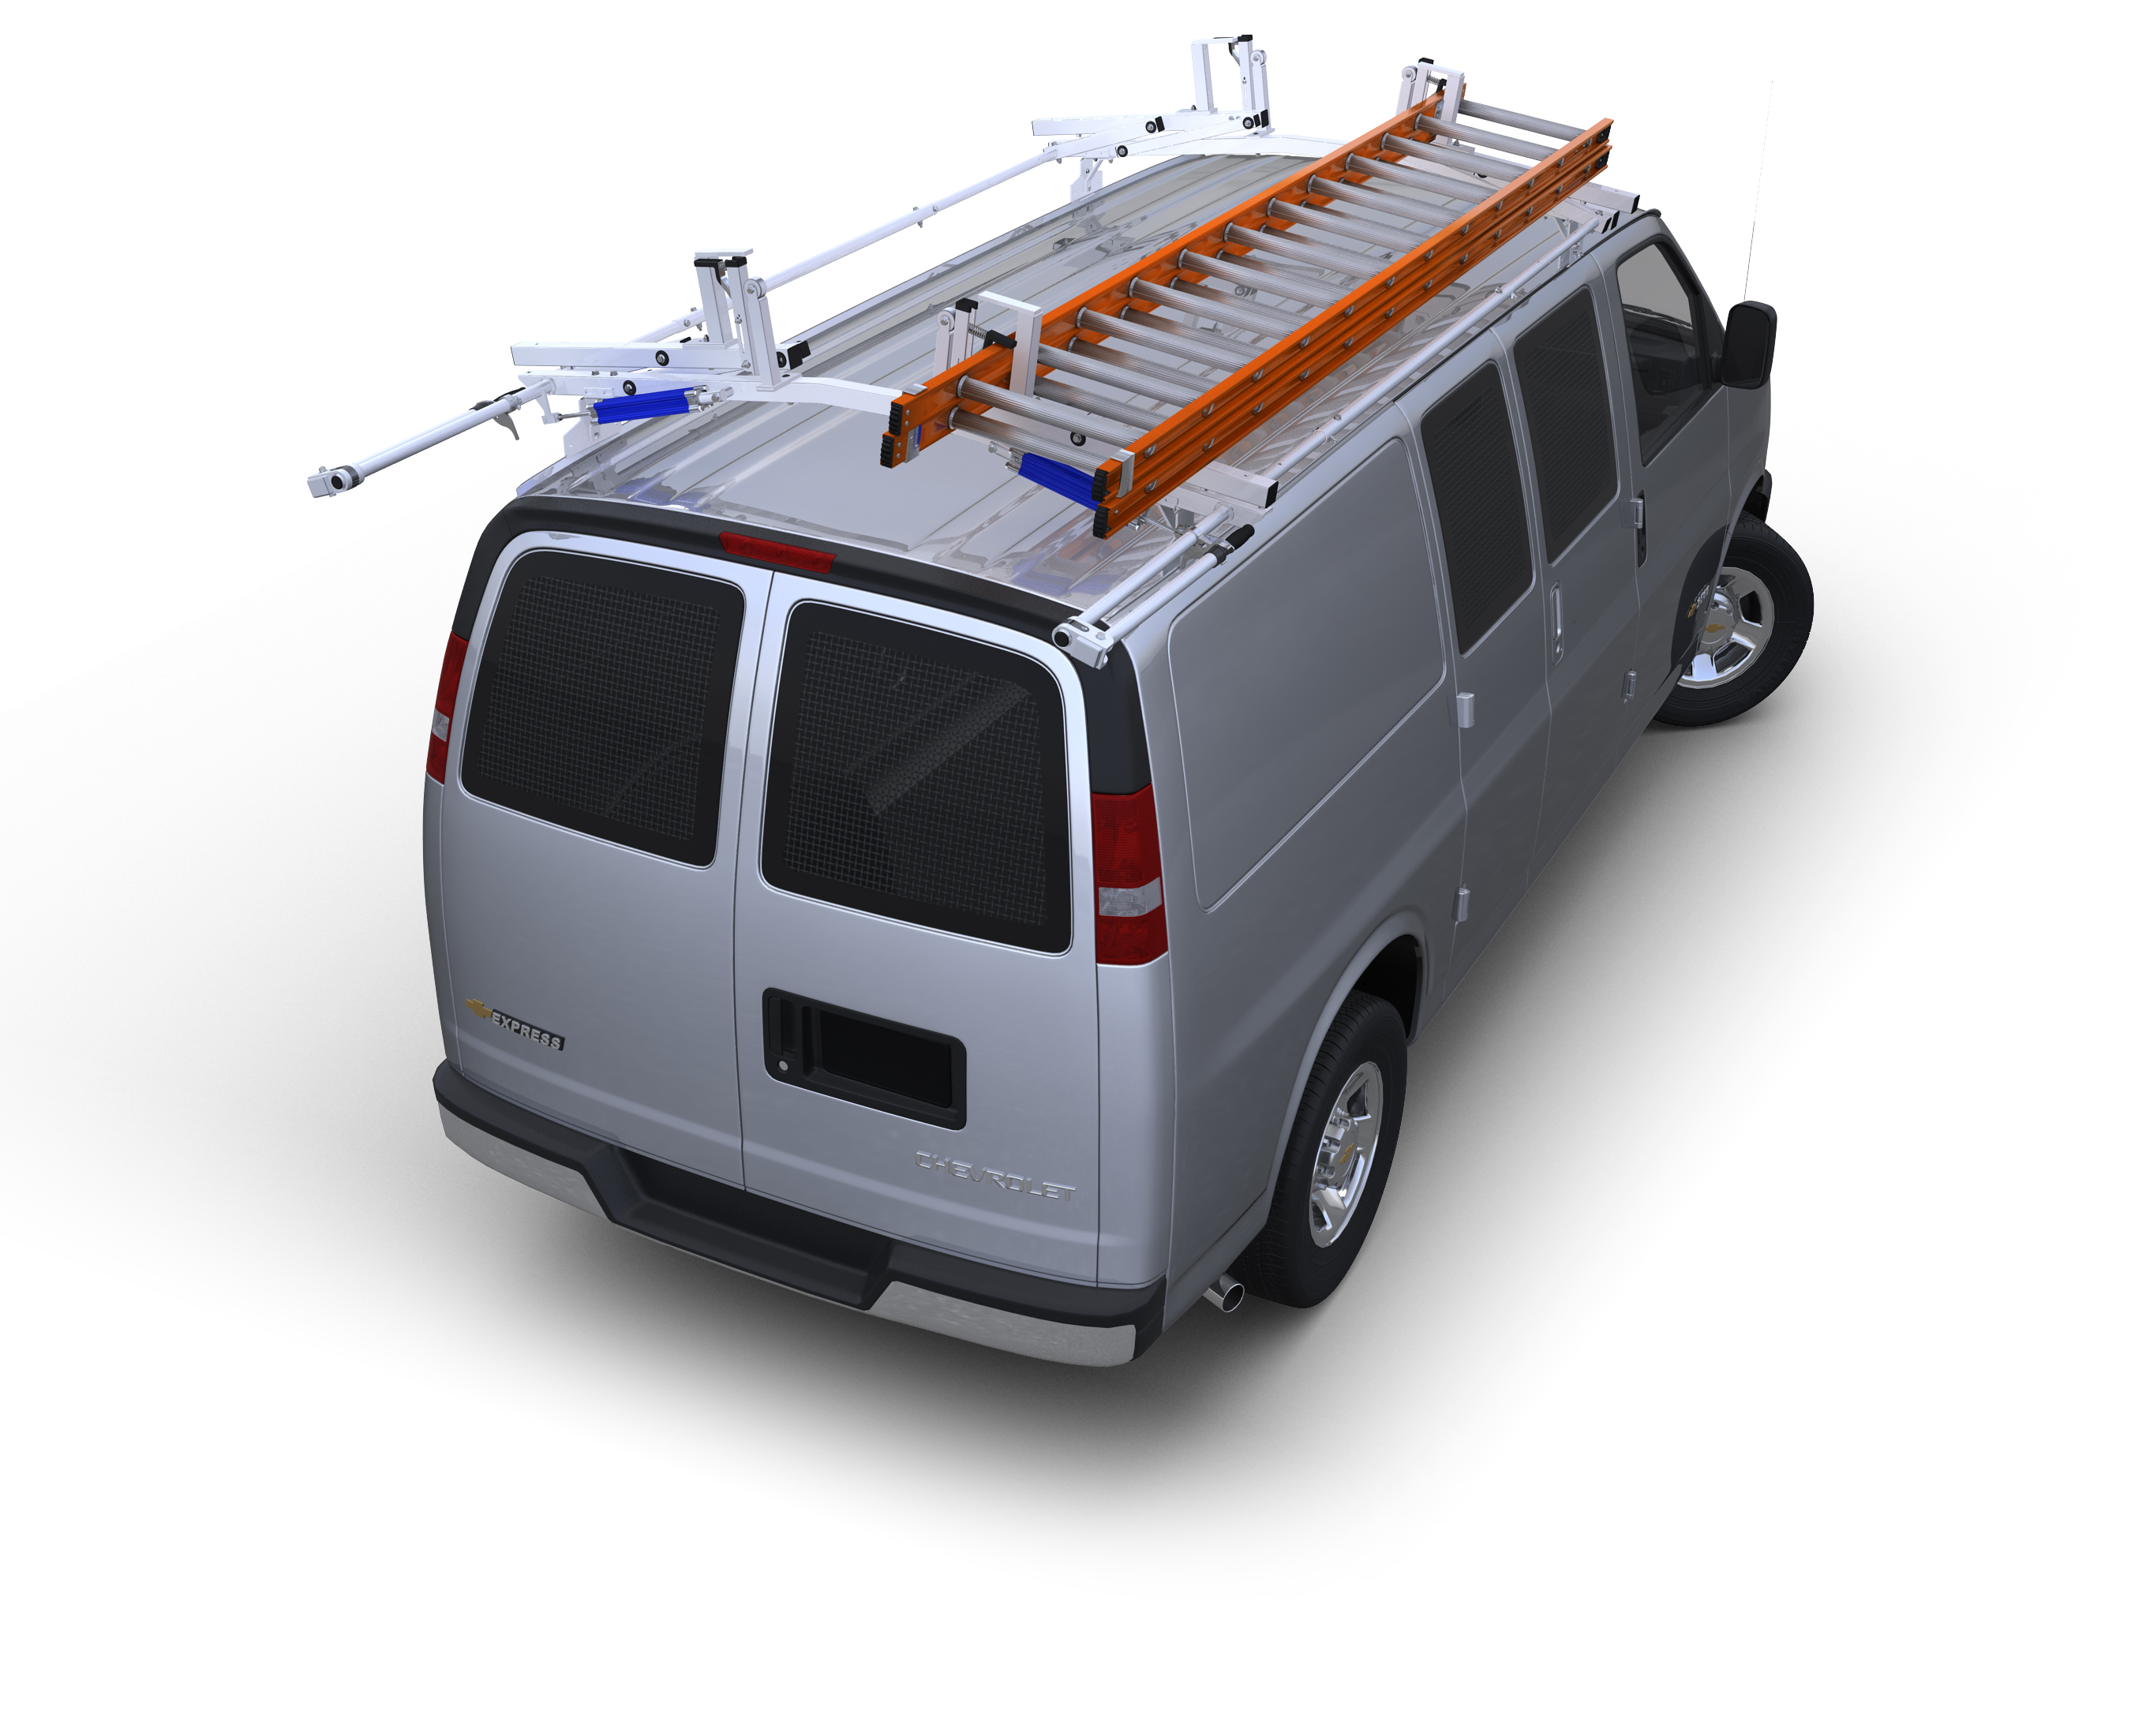 The Ultimate Aluminum Ladder Rack for the Nissan NV - Two Cross Supports